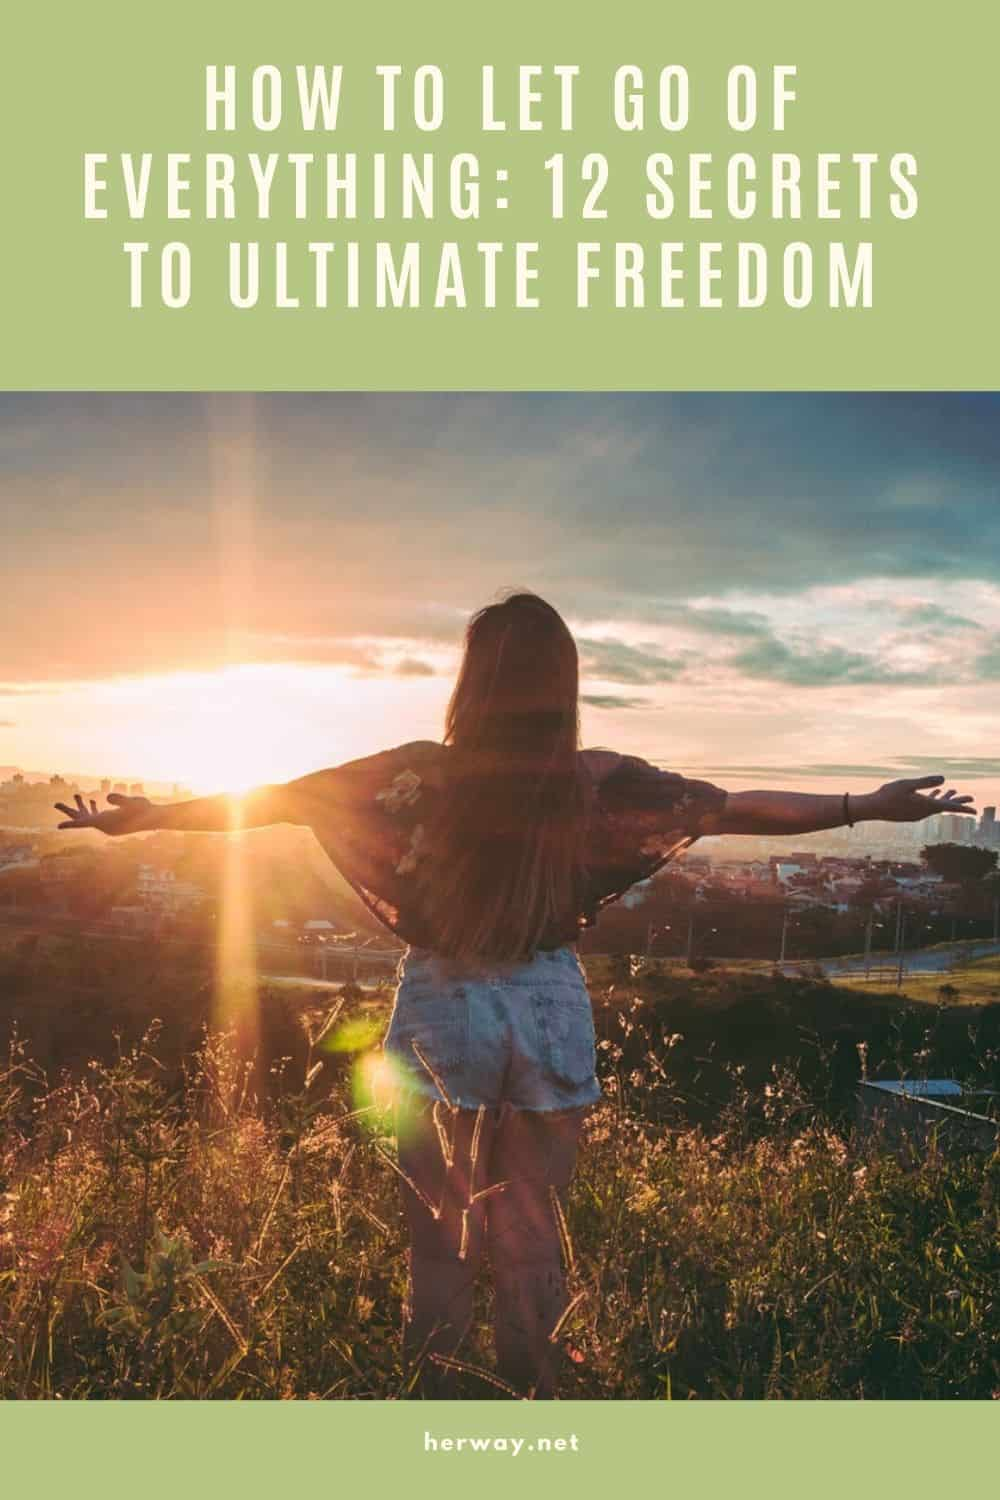 How To Let Go Of Everything: 12 Secrets To Ultimate Freedom